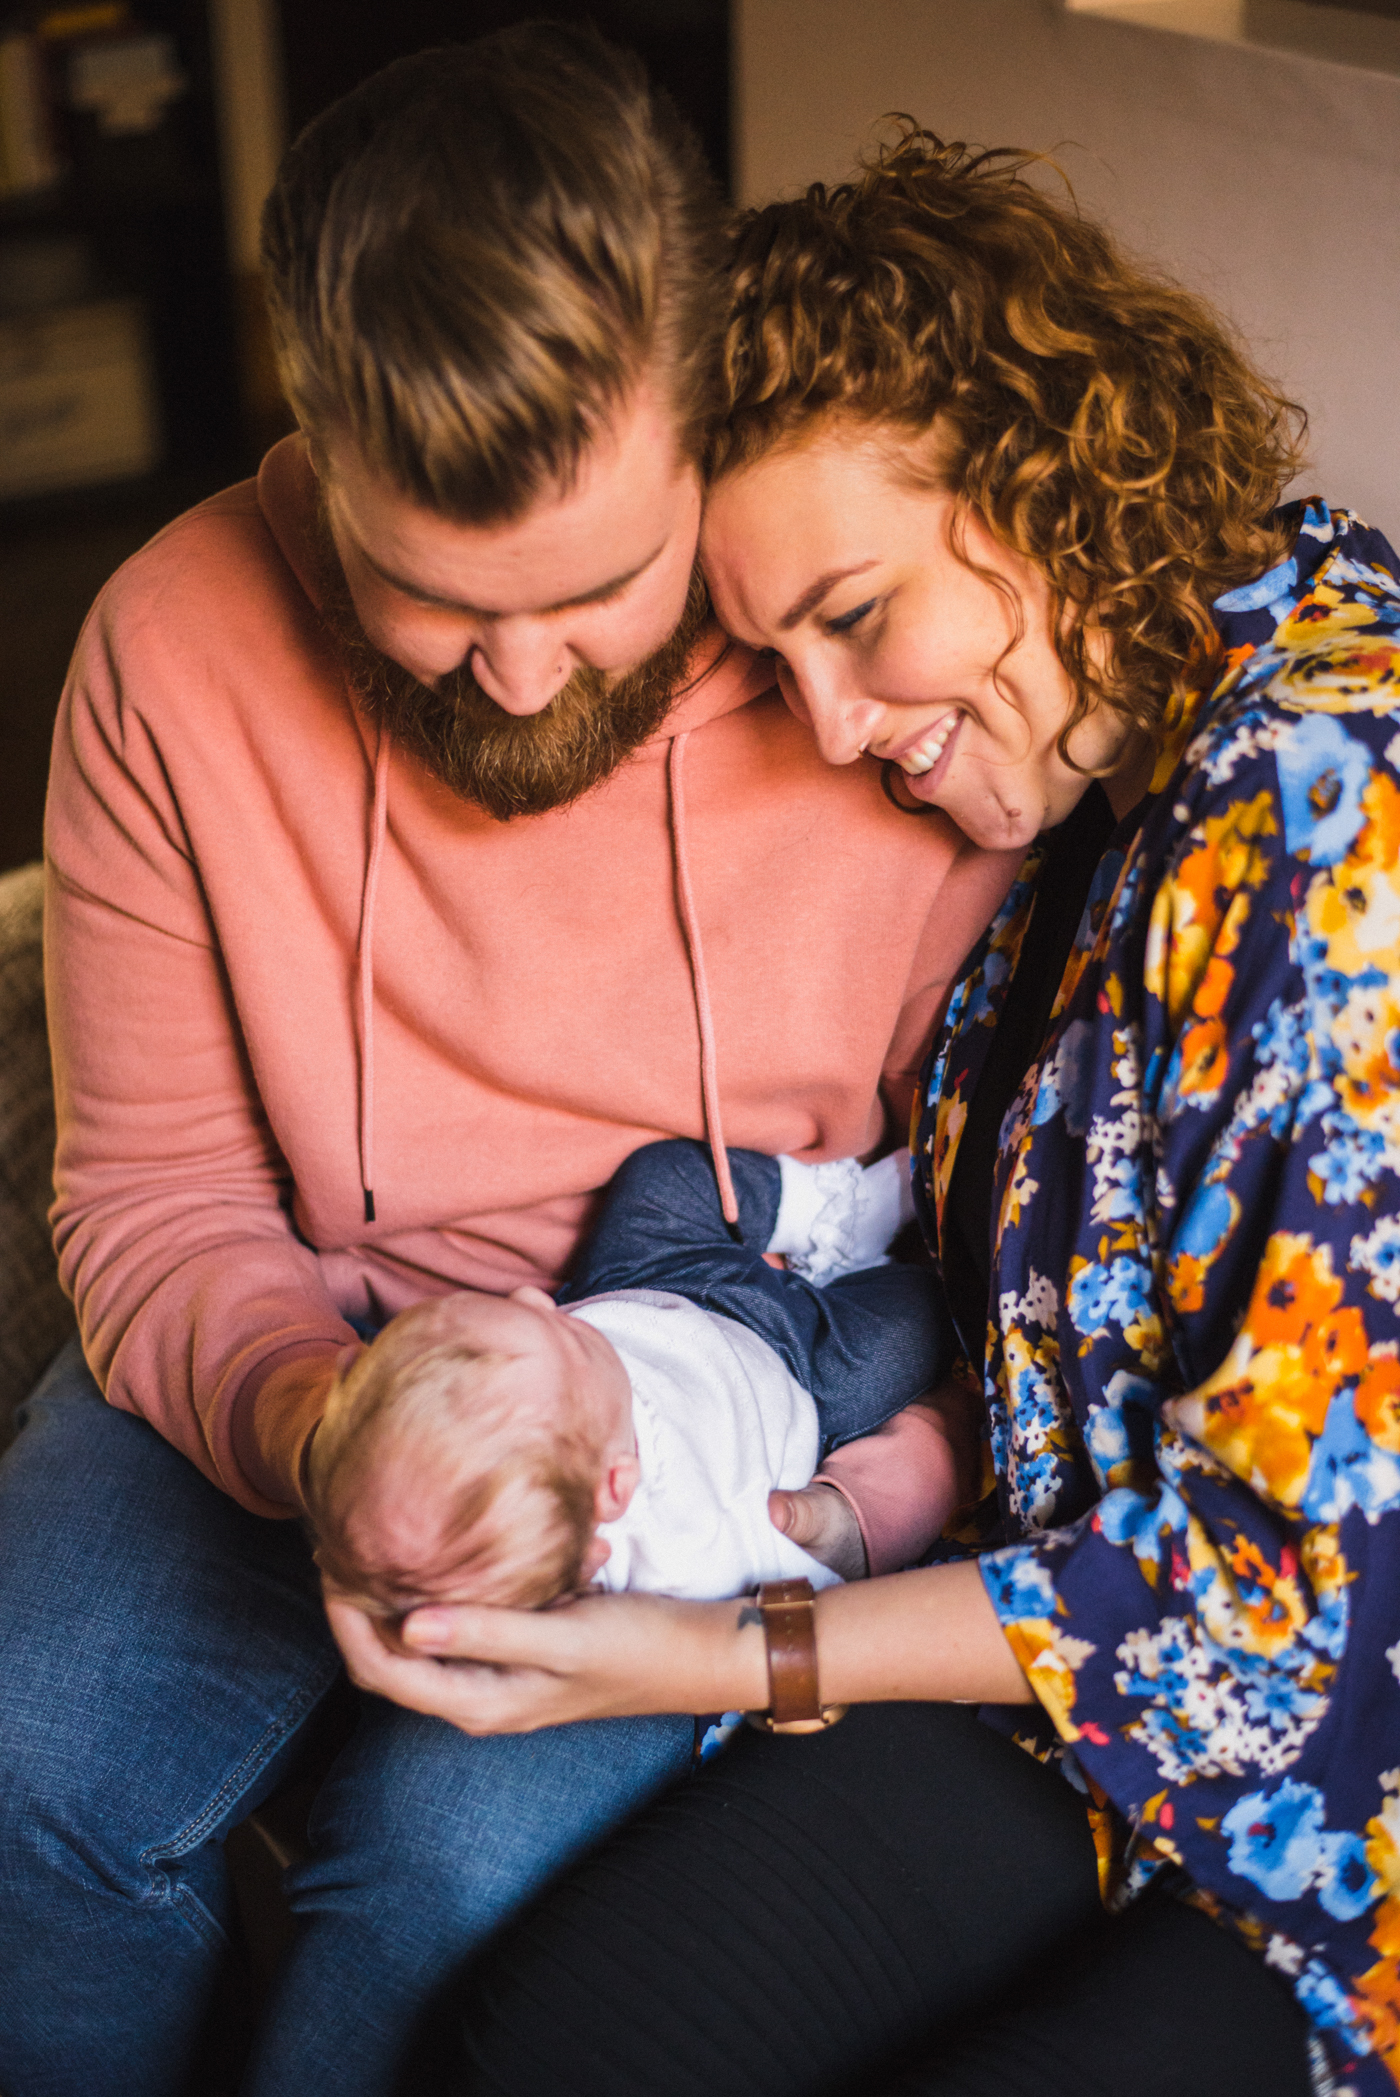 The Stipancic Family At Home Newborn Session Baby 1 Month Old Montreal Quebec Hamilton Ontario Aidan Hennebry Hush Hush Photography & Film Adelaide Pearle-6.jpg